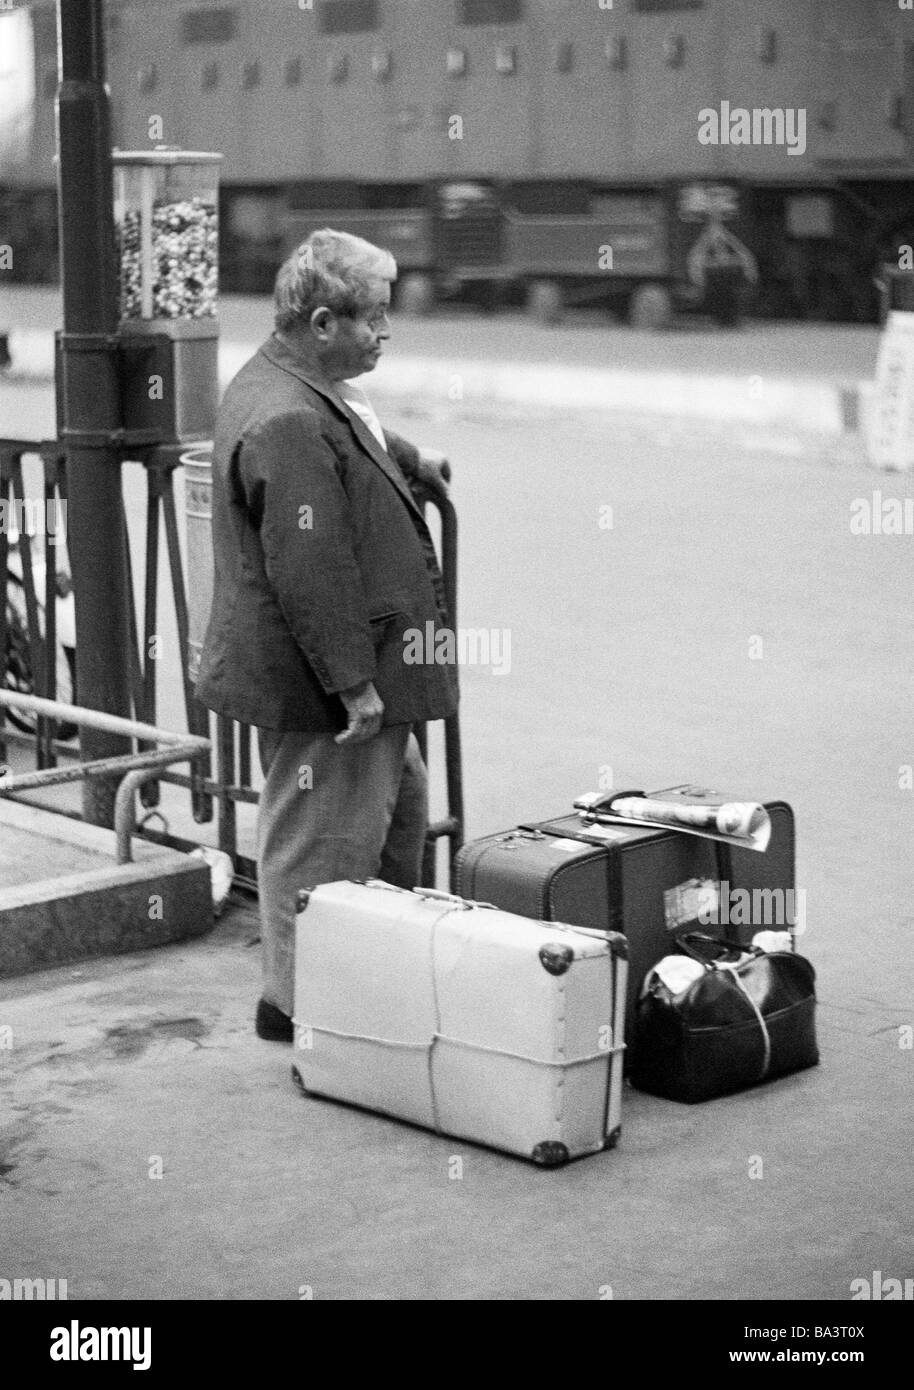 Seventies, black and white photo, people, older man stands on a platform, railroad station, suitcases, luggage, - Stock Image